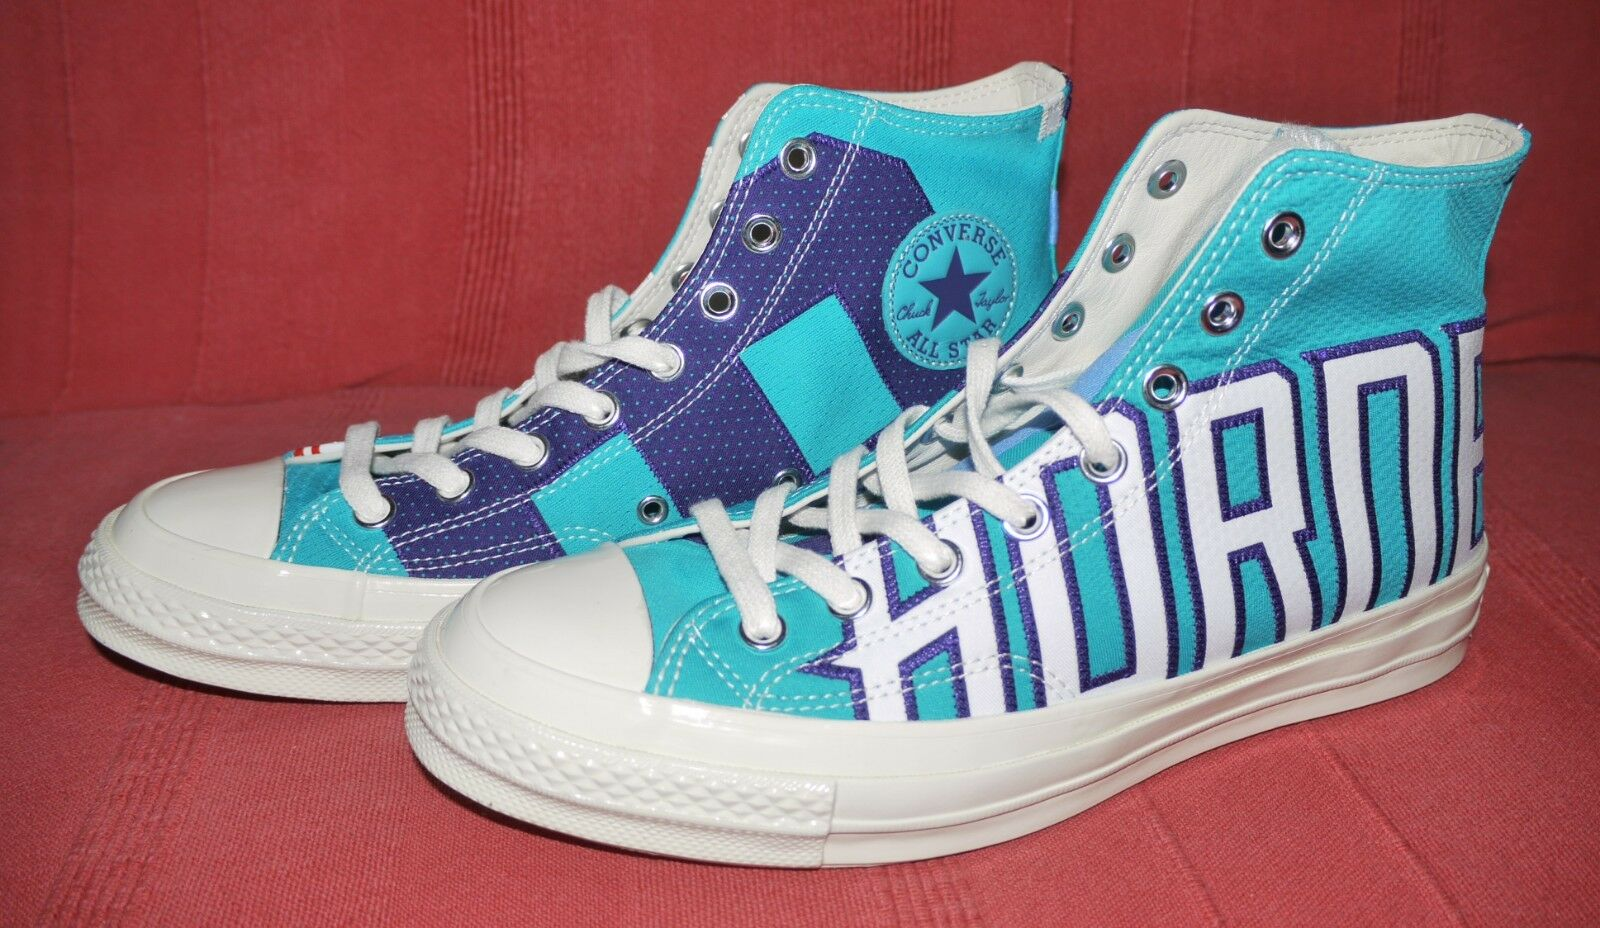 Converse Chuck 70 NBA Gameday Charlotte Hornets (Size 8 UK) CTAS - NEW w o Box